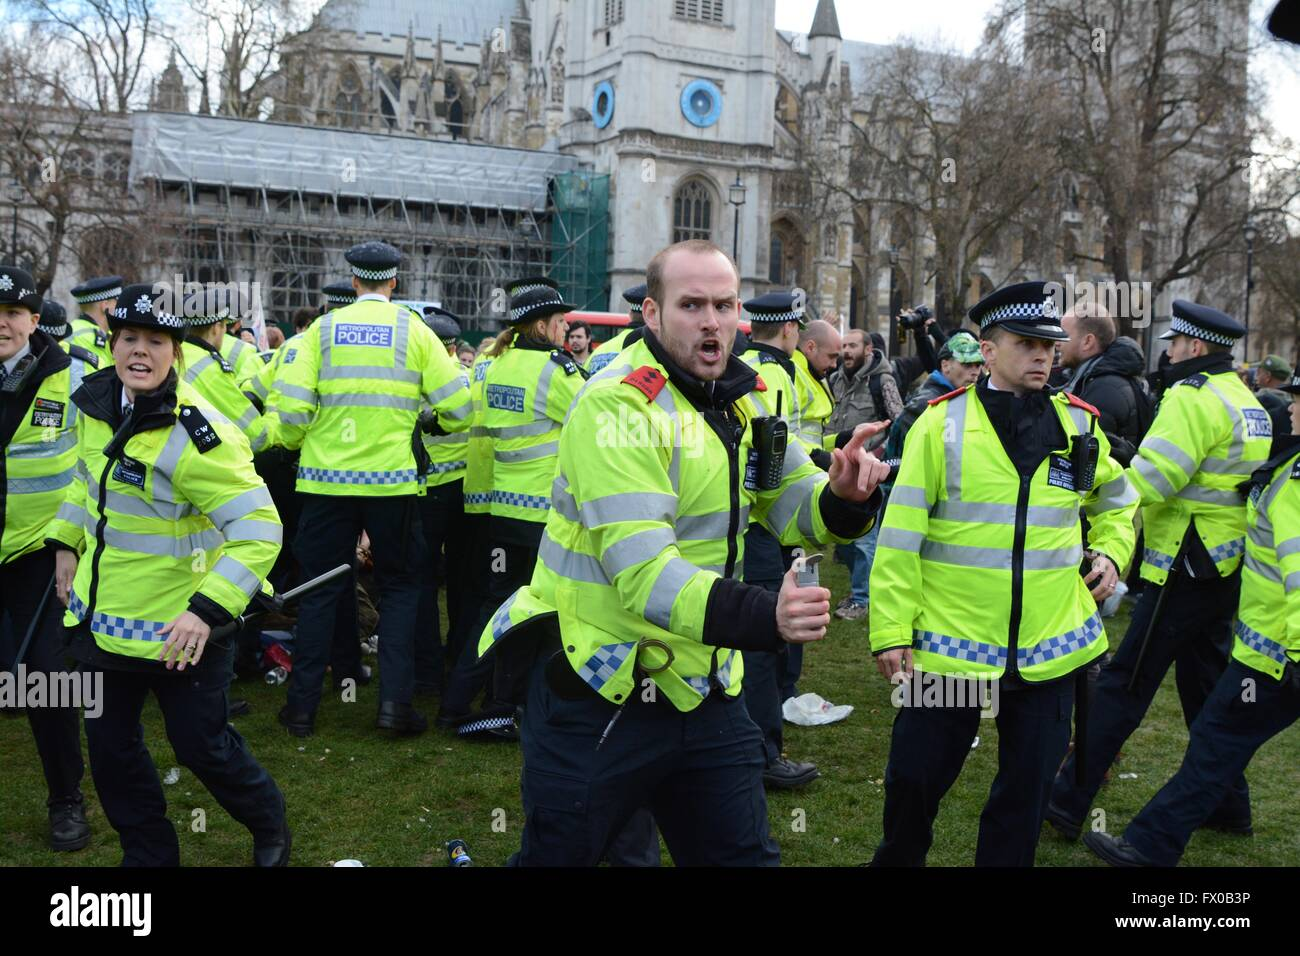 London, UK. 9th April 2016. Police officer draws CS spray and warns crowd back.Police clash with protesters in Parliament - Stock Image